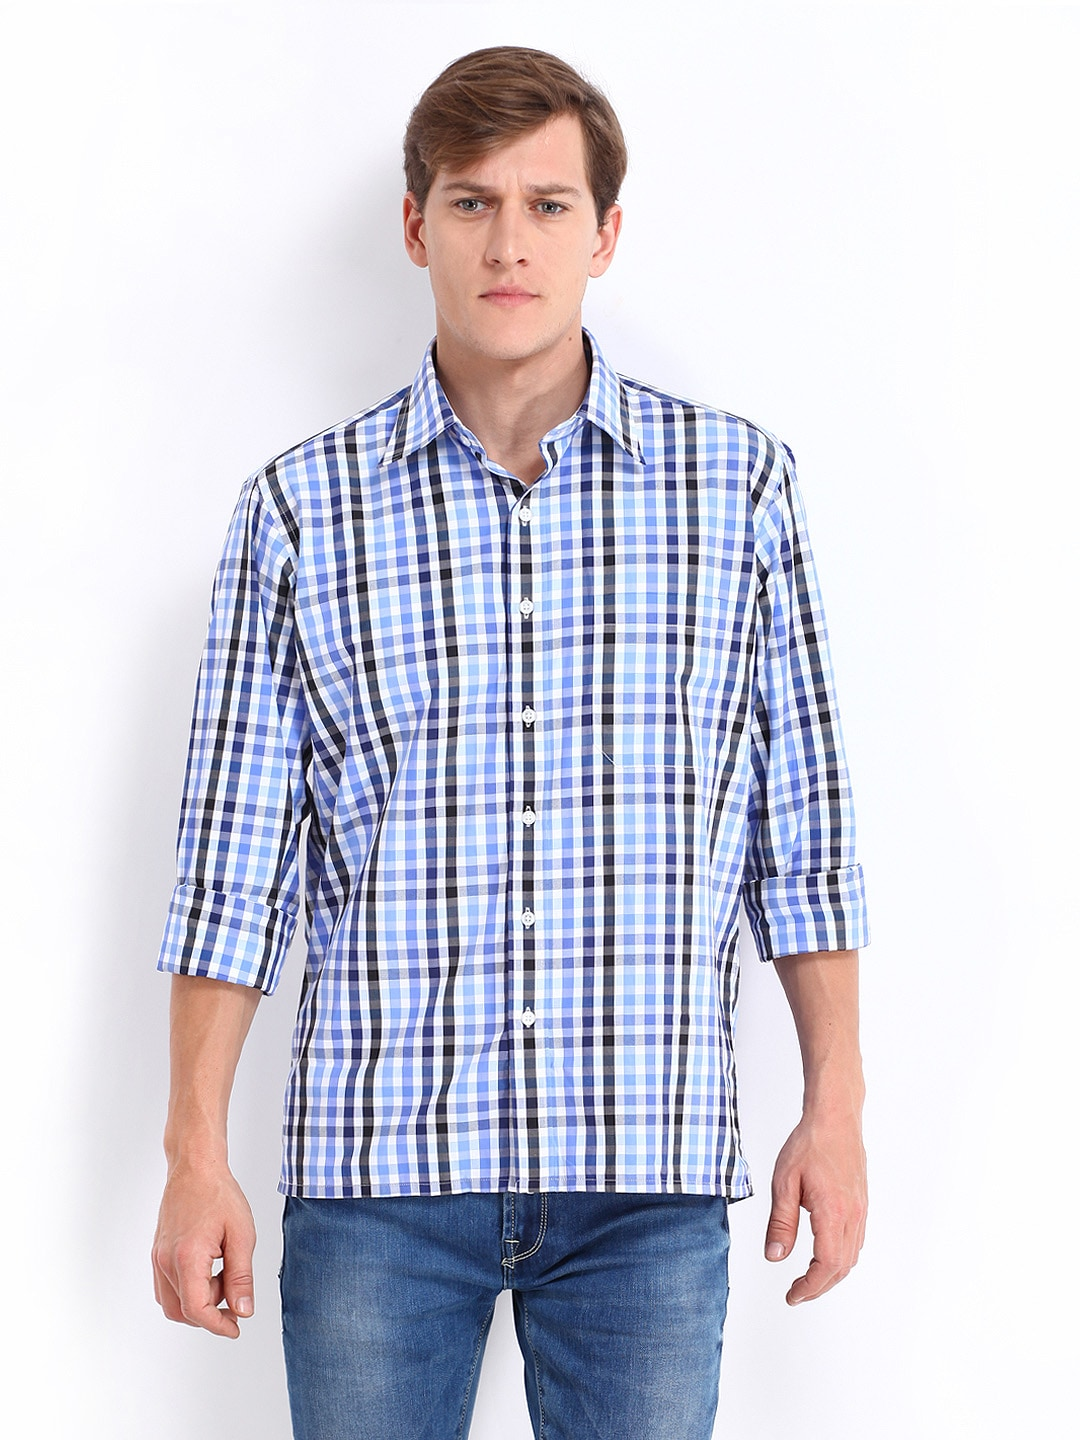 Oxemberg Oxemberg Men White & Blue Checked Casual Shirt (Multicolor)